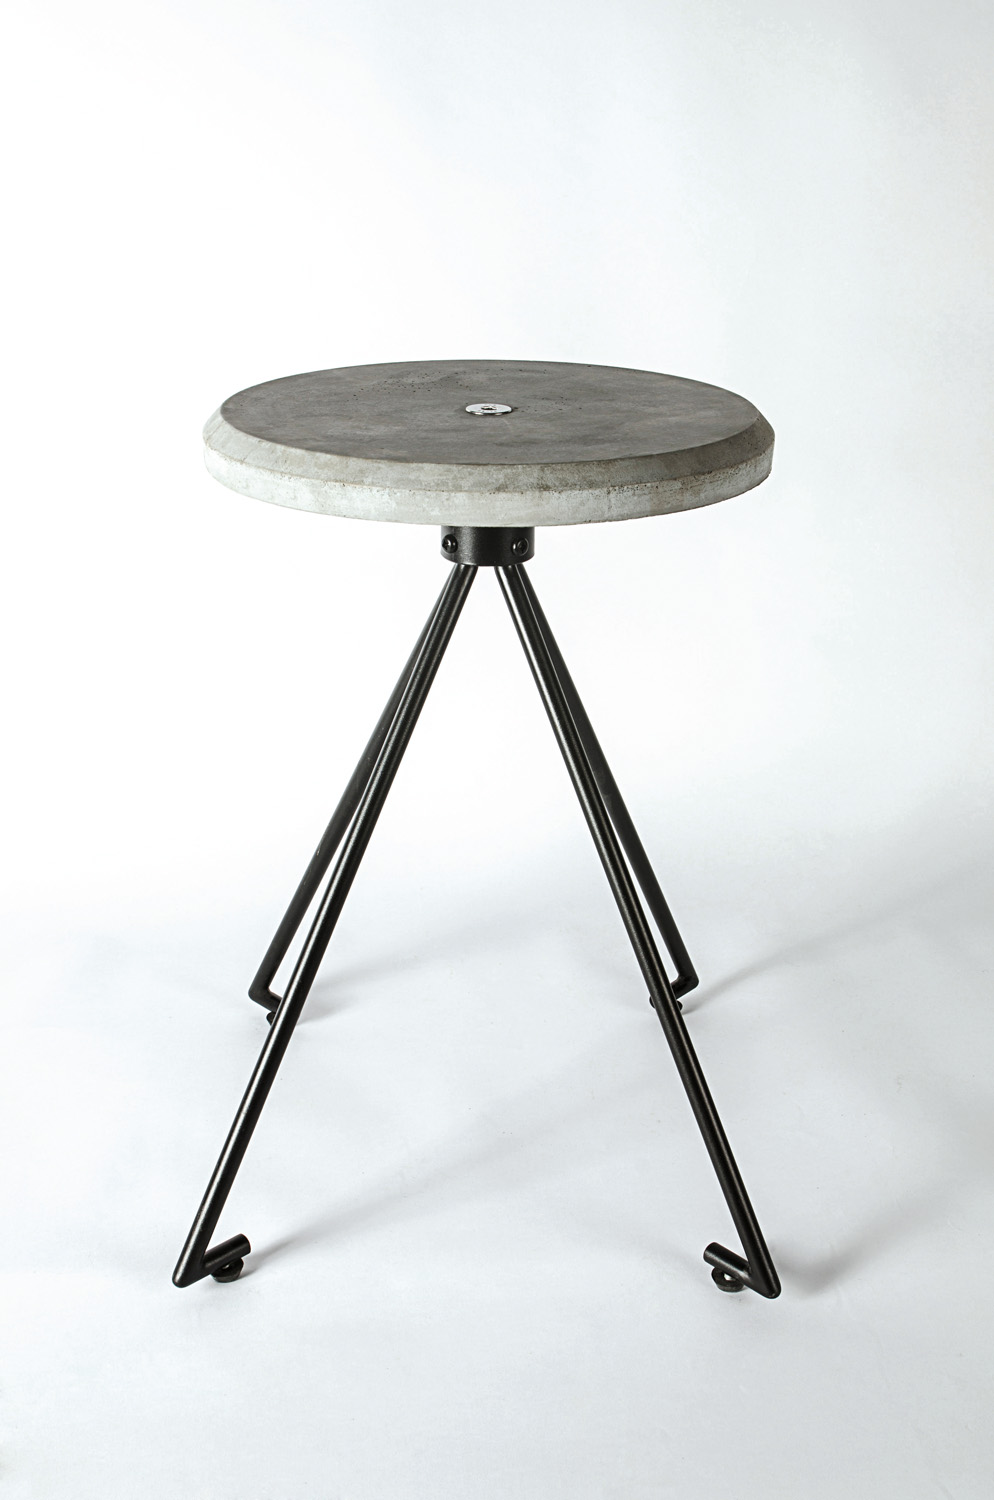 Zhua table by Bentu, $1599, meizai.com.au